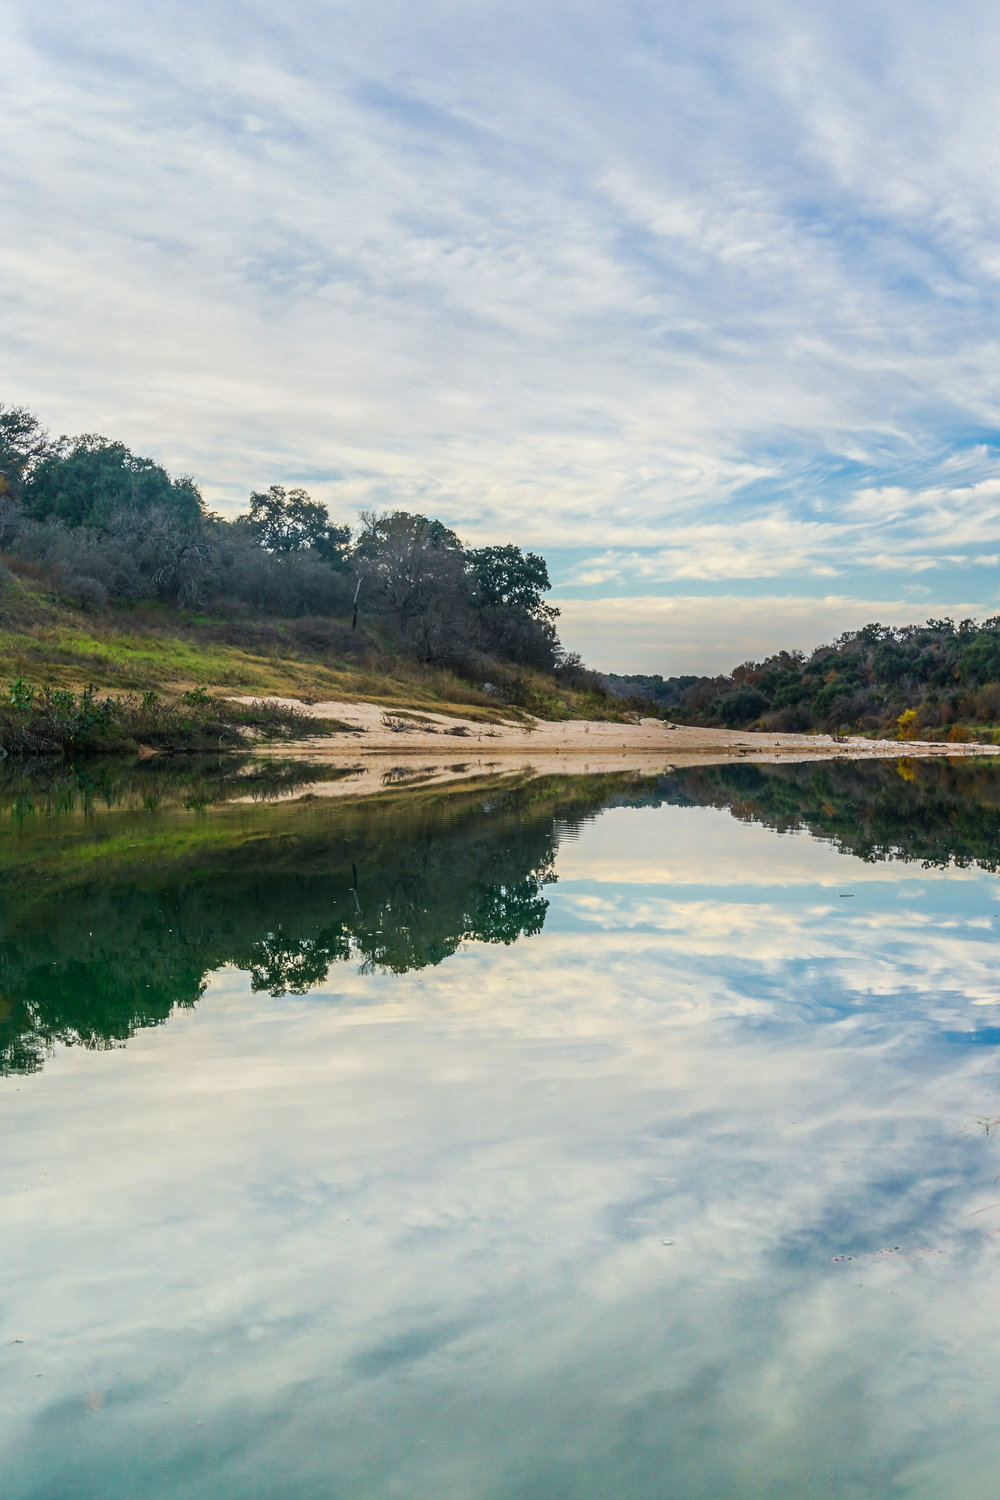 The reflection of Pedernales River